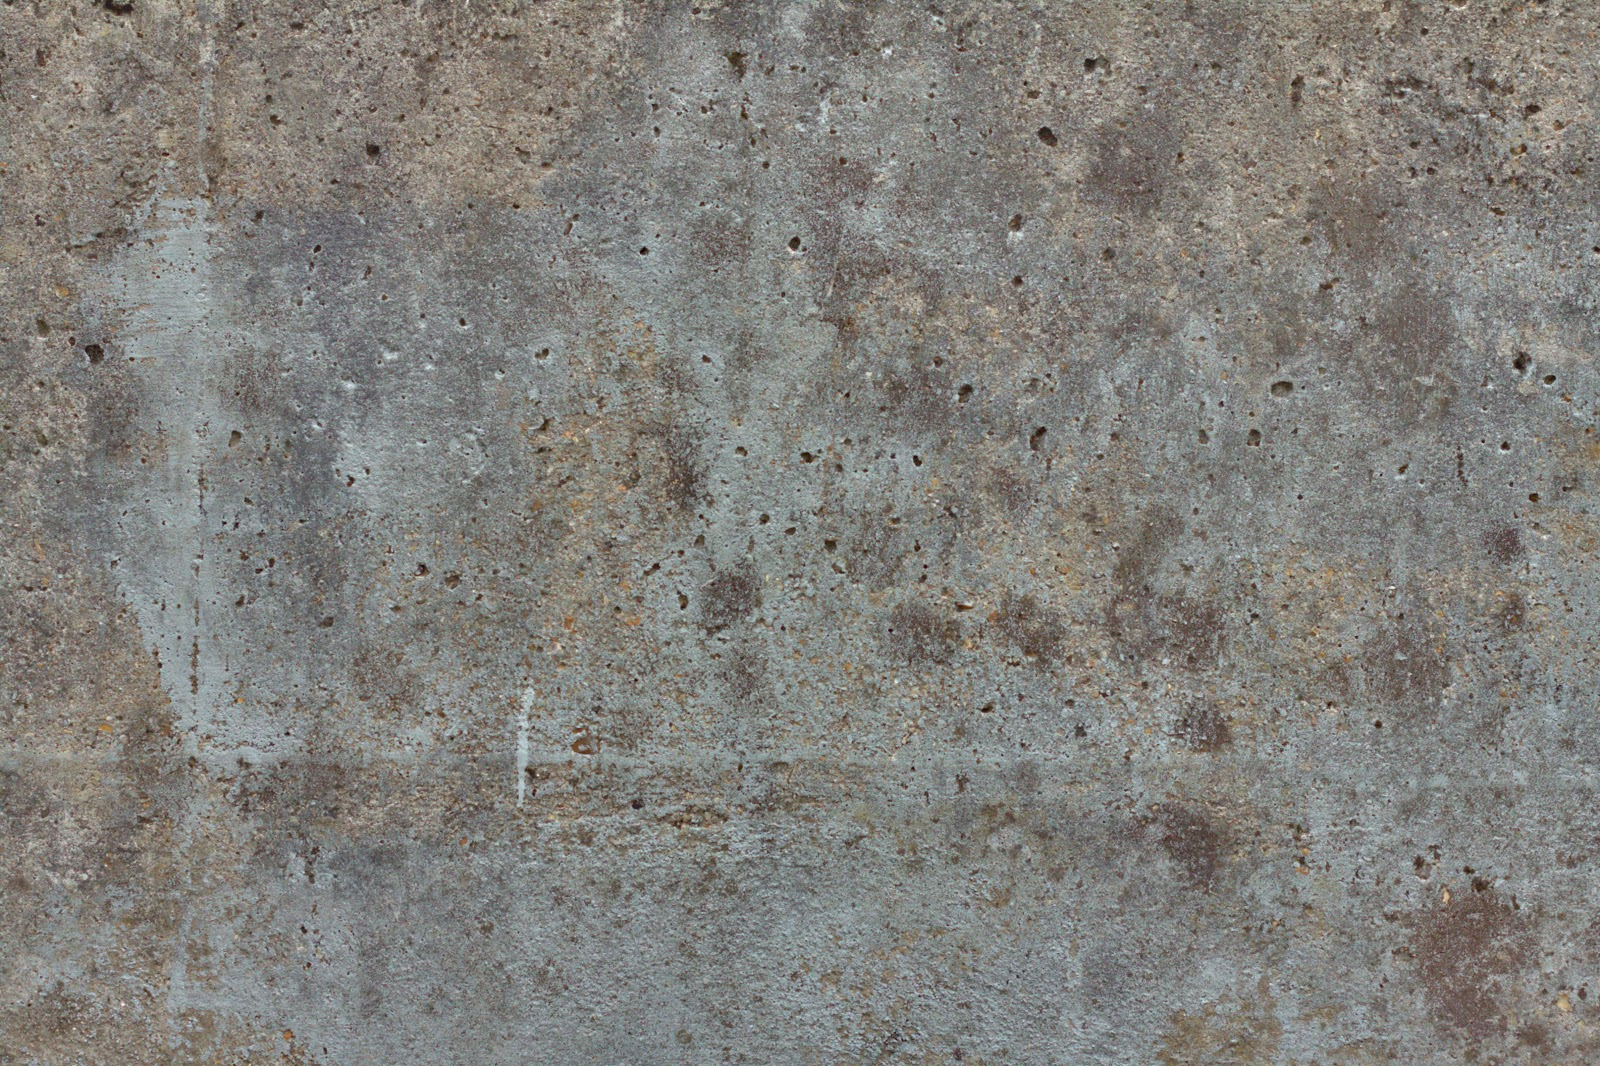 (Concrete 22) Granite rough dirty concrete stone texture 4770x3178